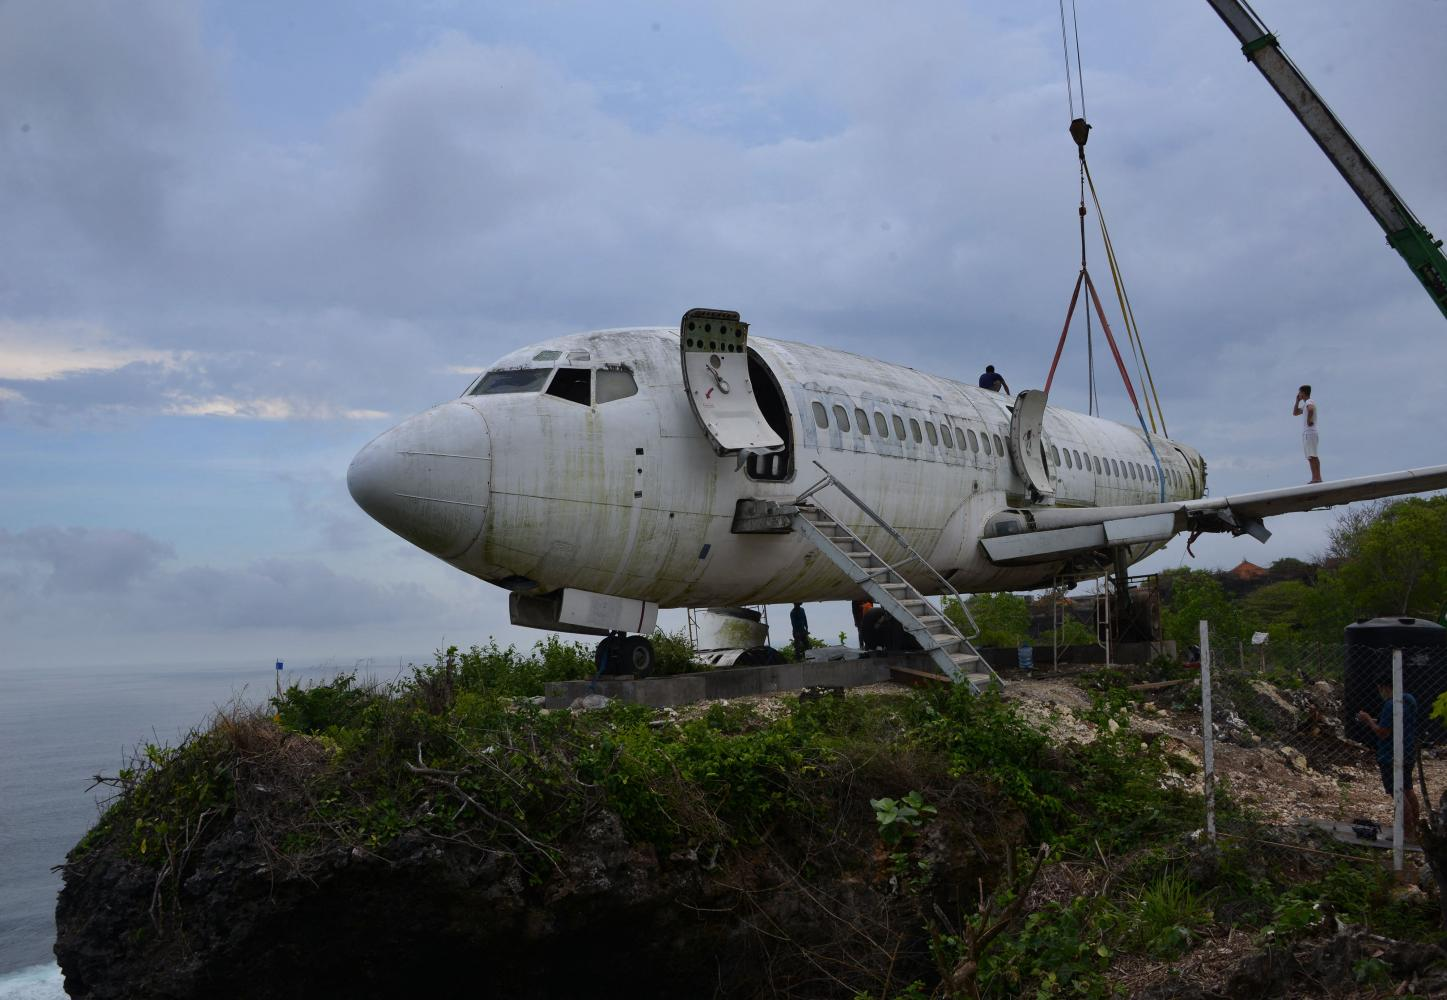 Retired jet on cliff new attraction in Bali